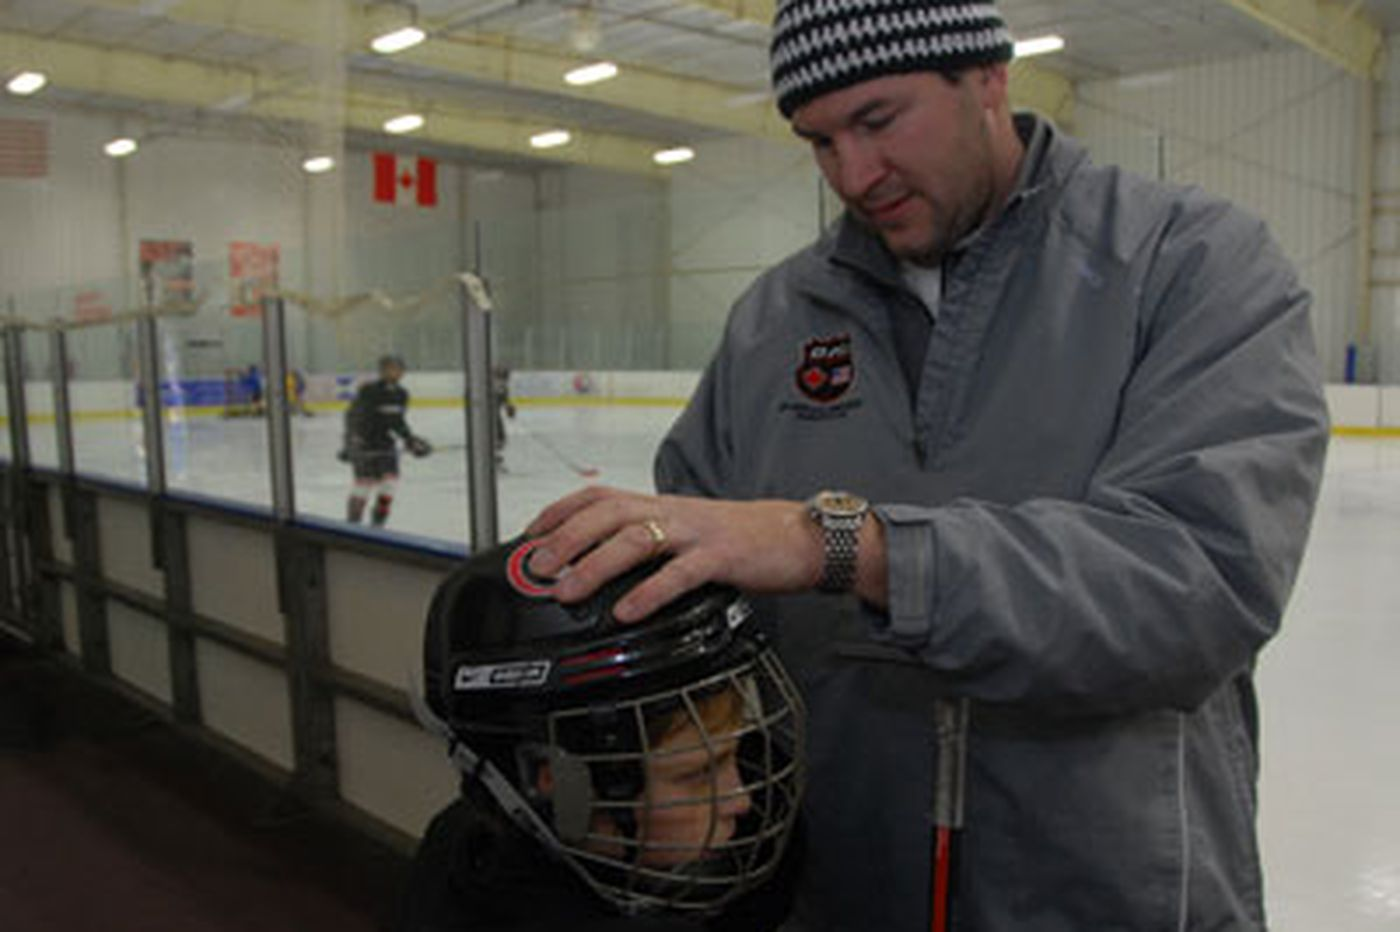 Promoting concussion awareness in youth hockey